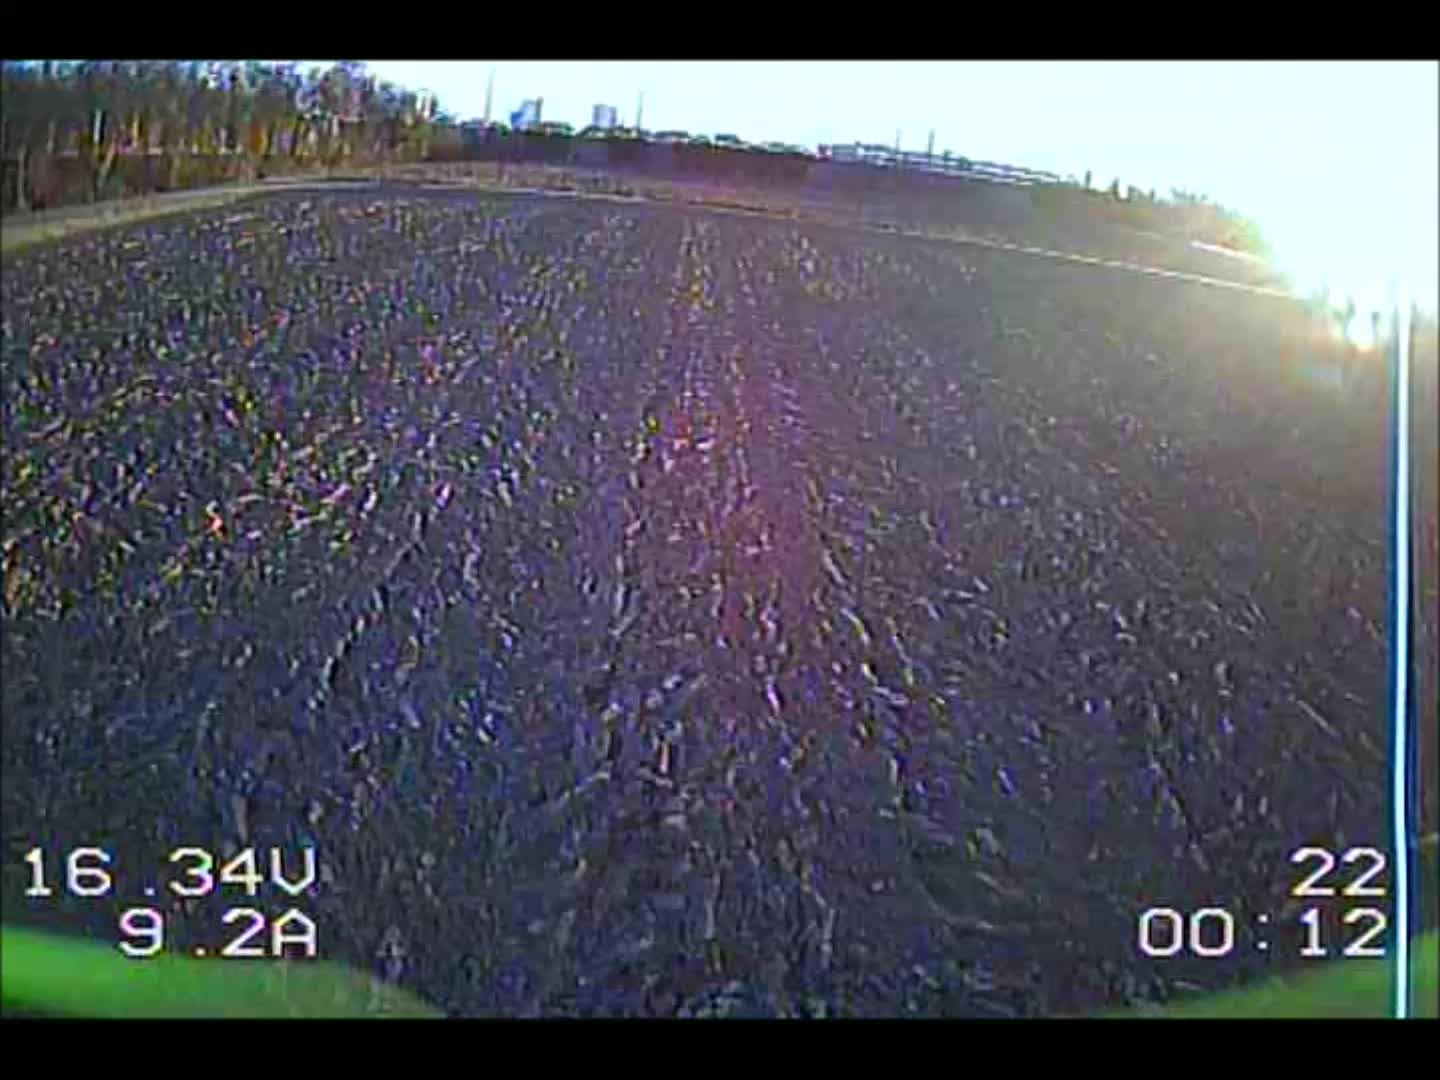 Multicopter, DVR footage GIFs